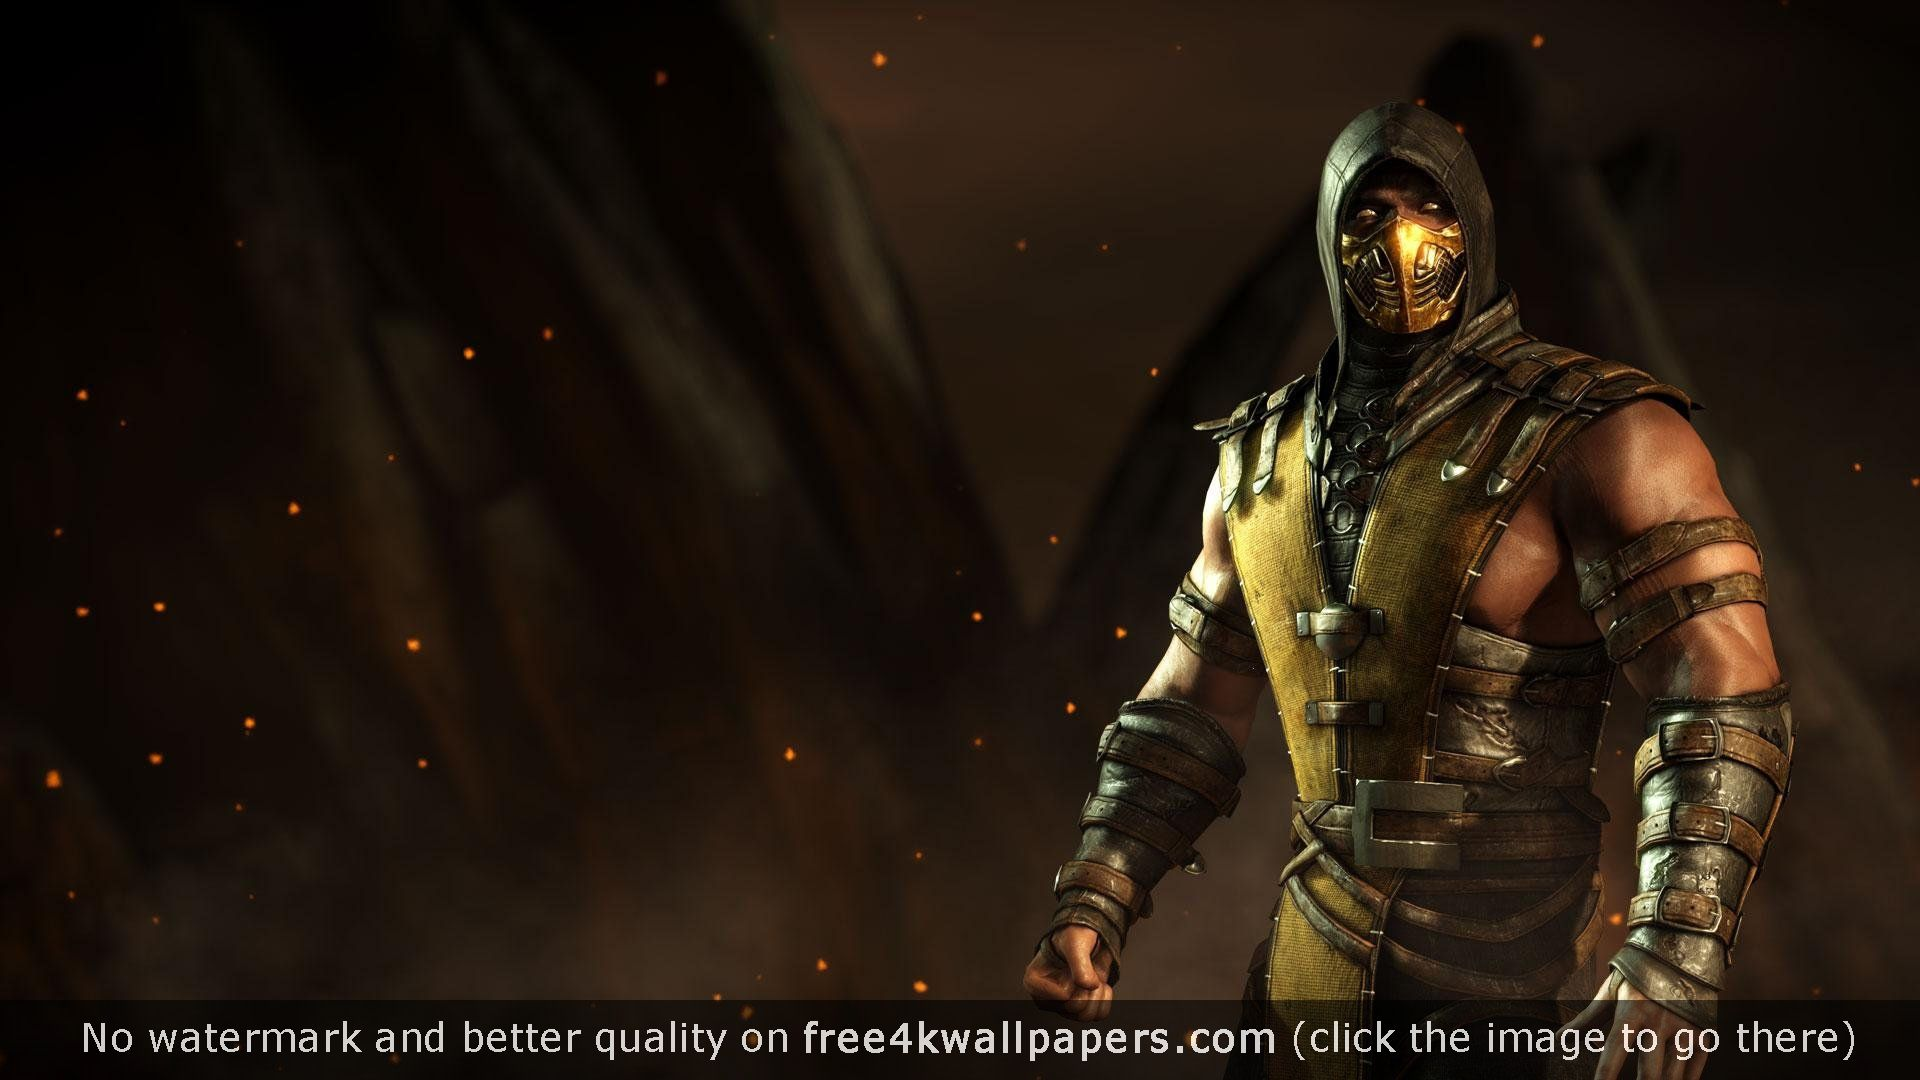 kombat wallpapers for desktop and mobile devices 1920x1080